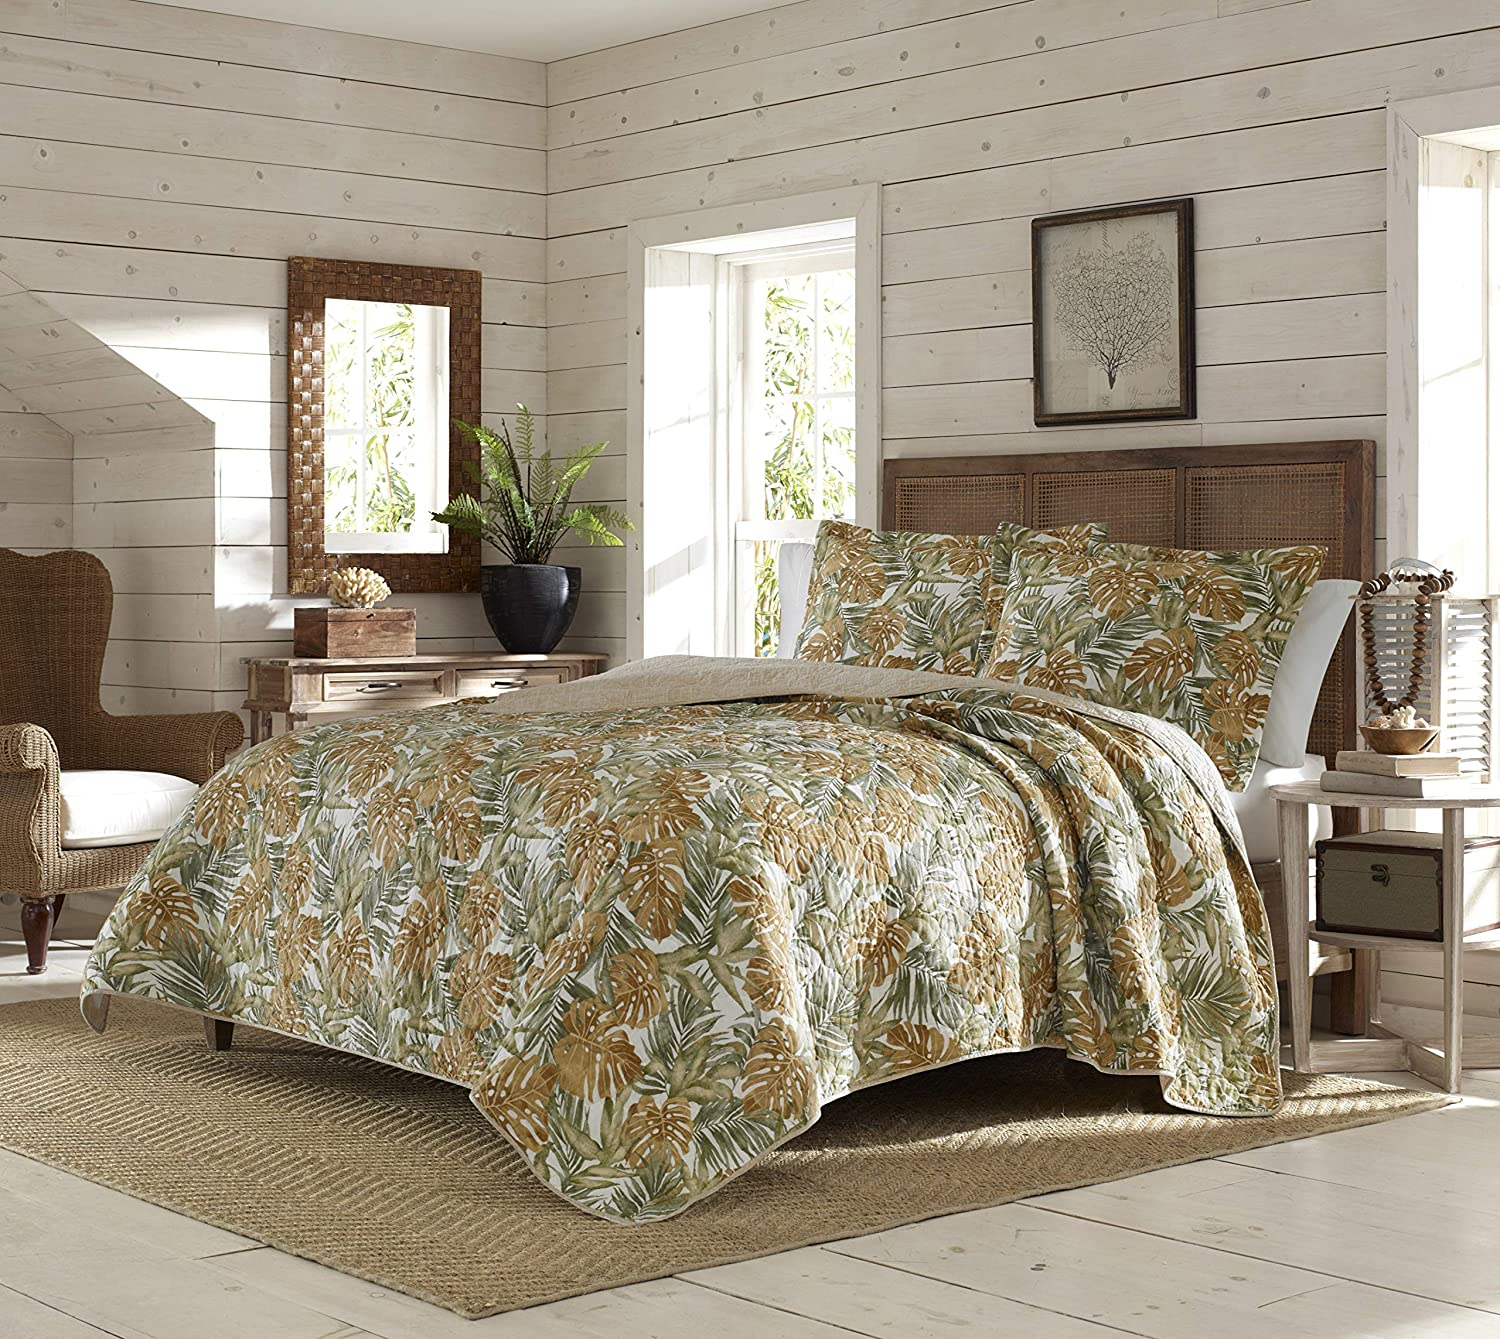 Tommy Bahama | Newland Forest Bedding Collection | Luxury Quality Ultra Soft Cotton Quilt Coverlet 3 Piece Set, Comfortable & Stylish Design for Home Décor, King, Dark Yellow